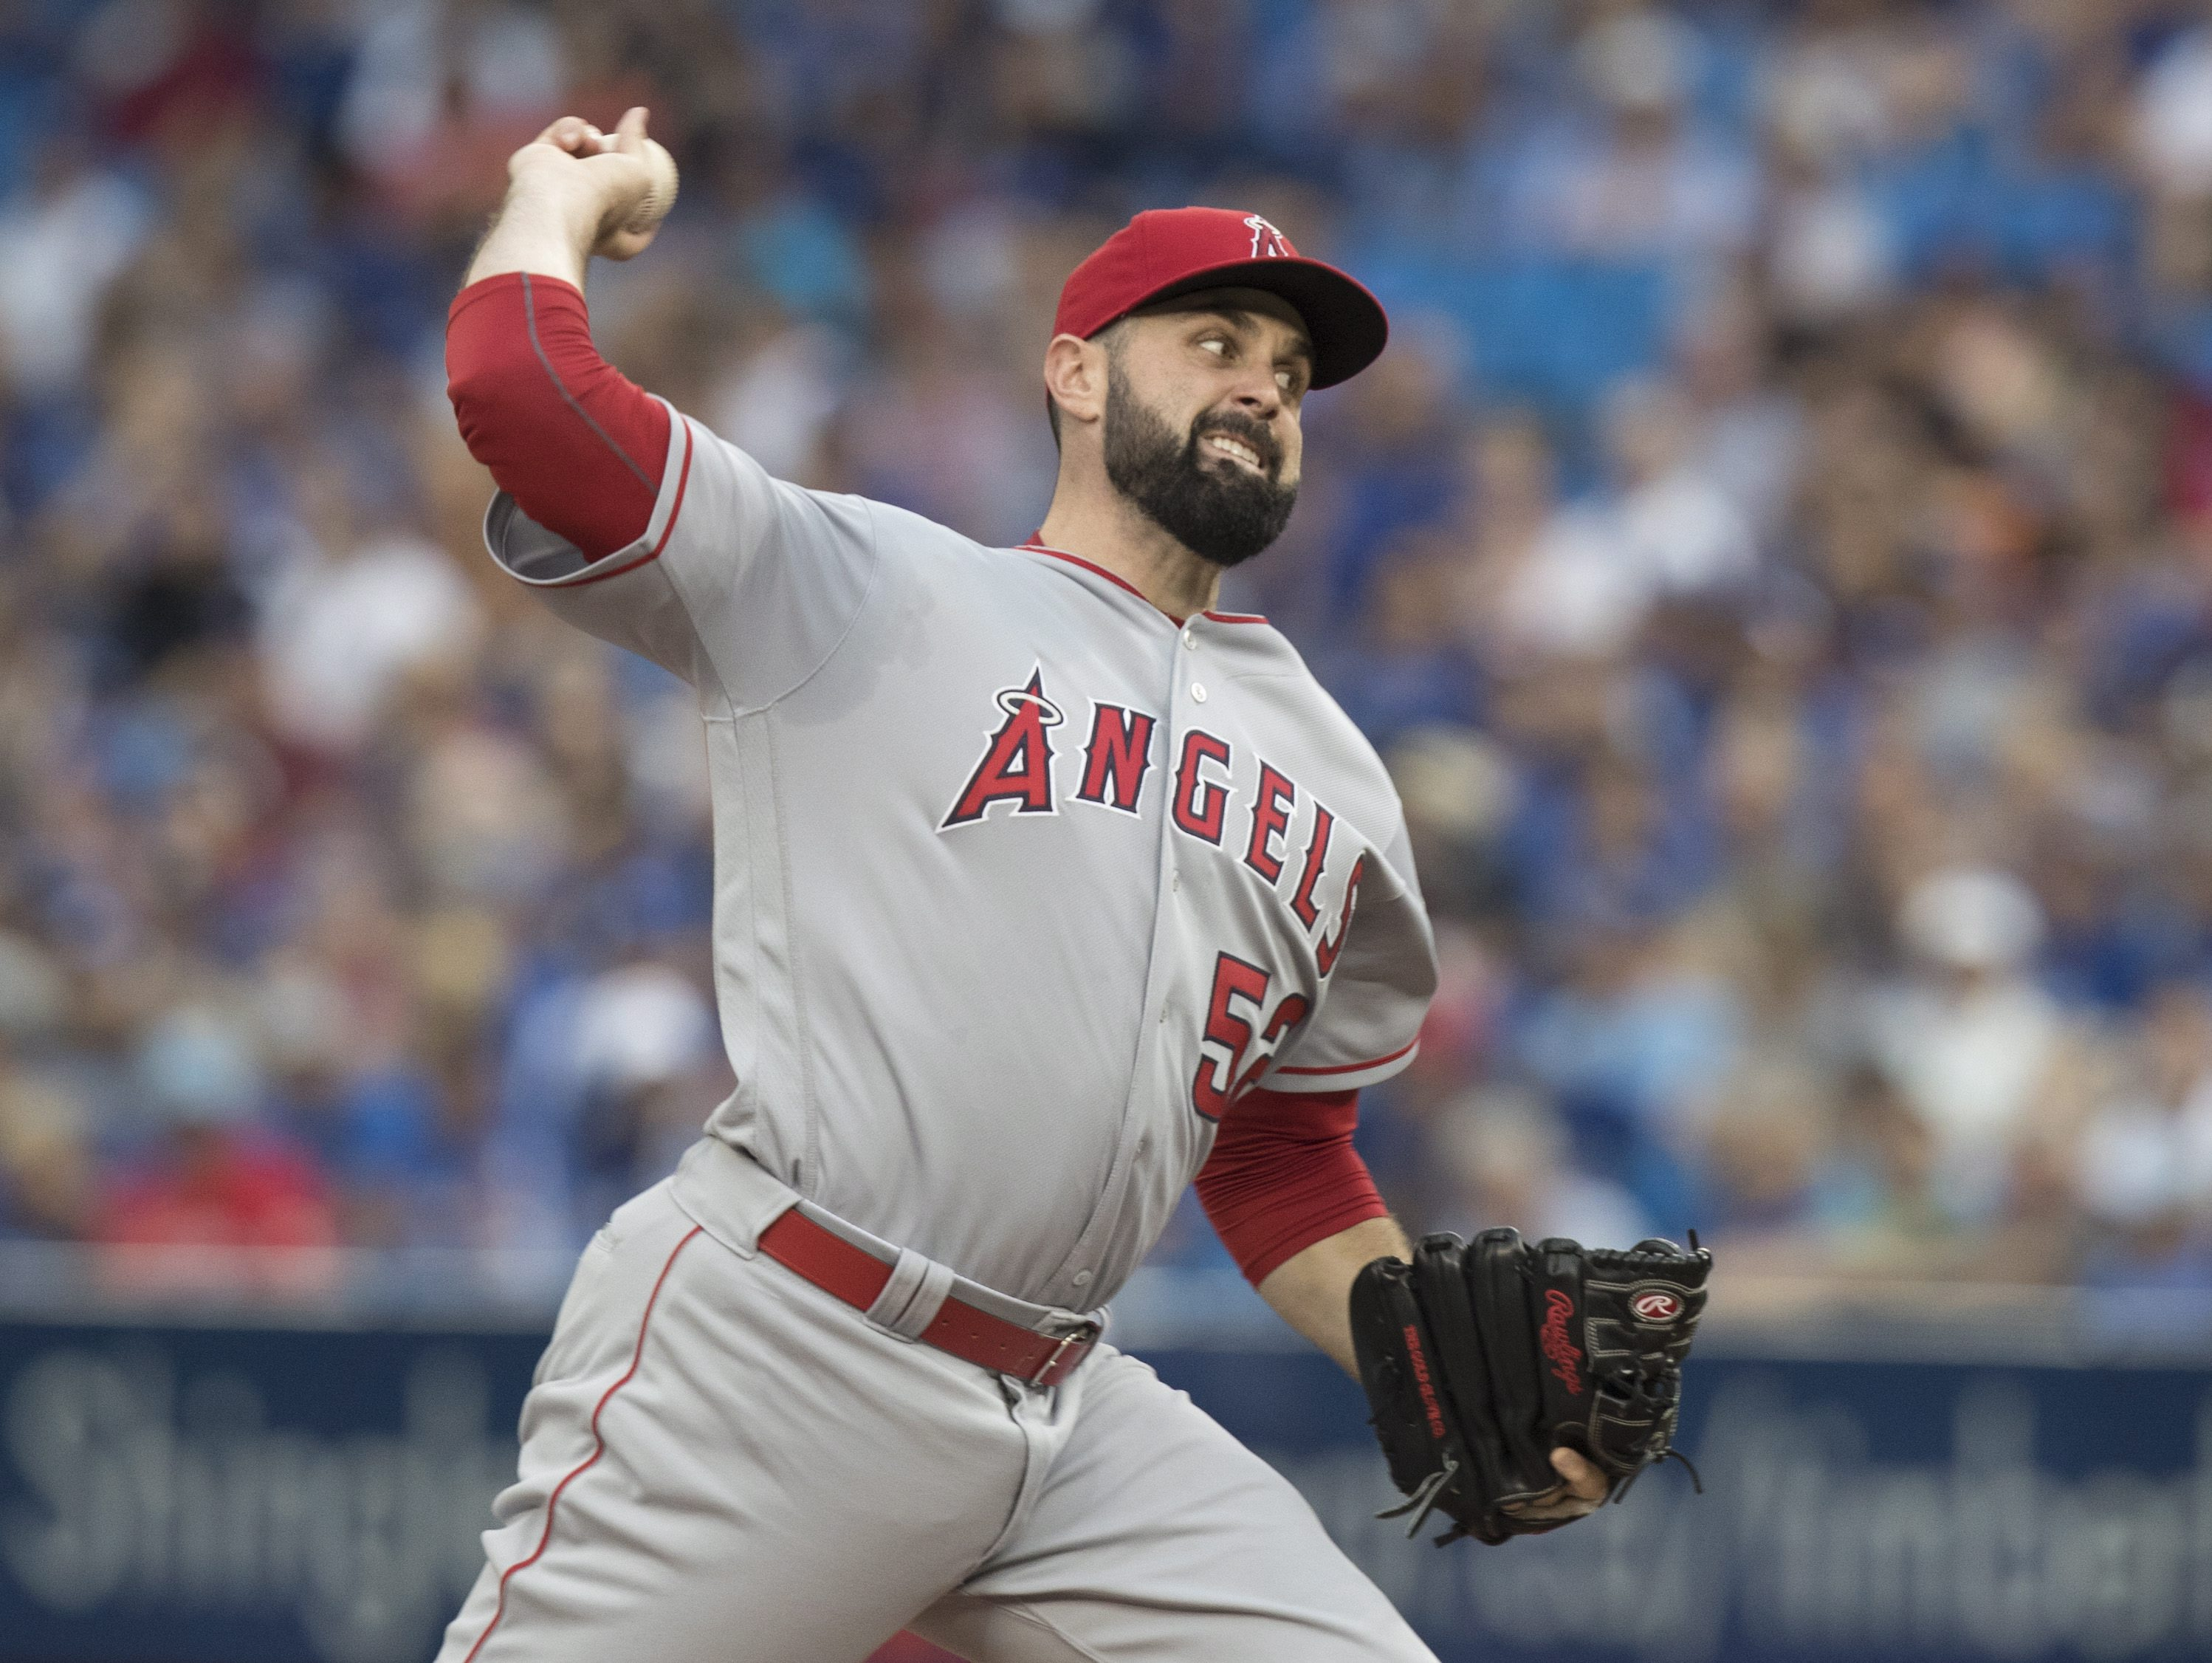 Los Angeles Angels starting pitcher Matt Shoemaker throws against the Toronto Blue Jays during the first inning of a baseball game Wednesday, Aug. 24, 2016, in Toronto. (Fred Thornhill/The Canadian Press via AP)